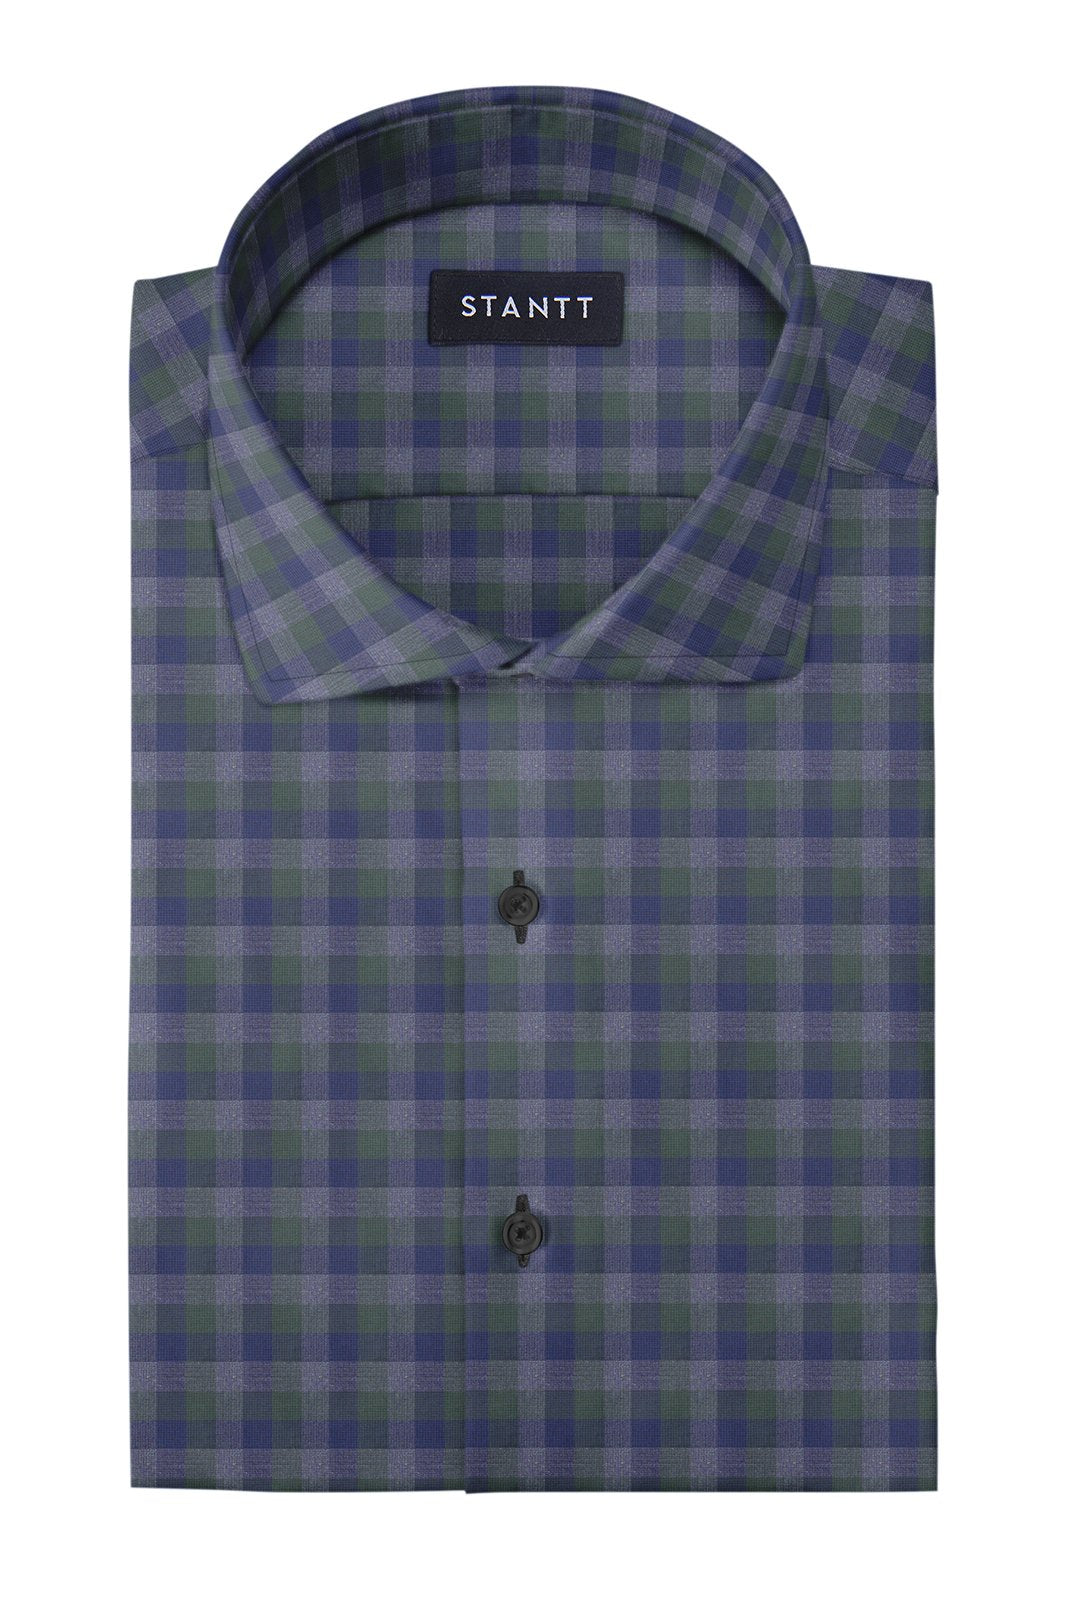 Hunter Green Charcoal Multi Check: Cutaway Collar, French Cuff